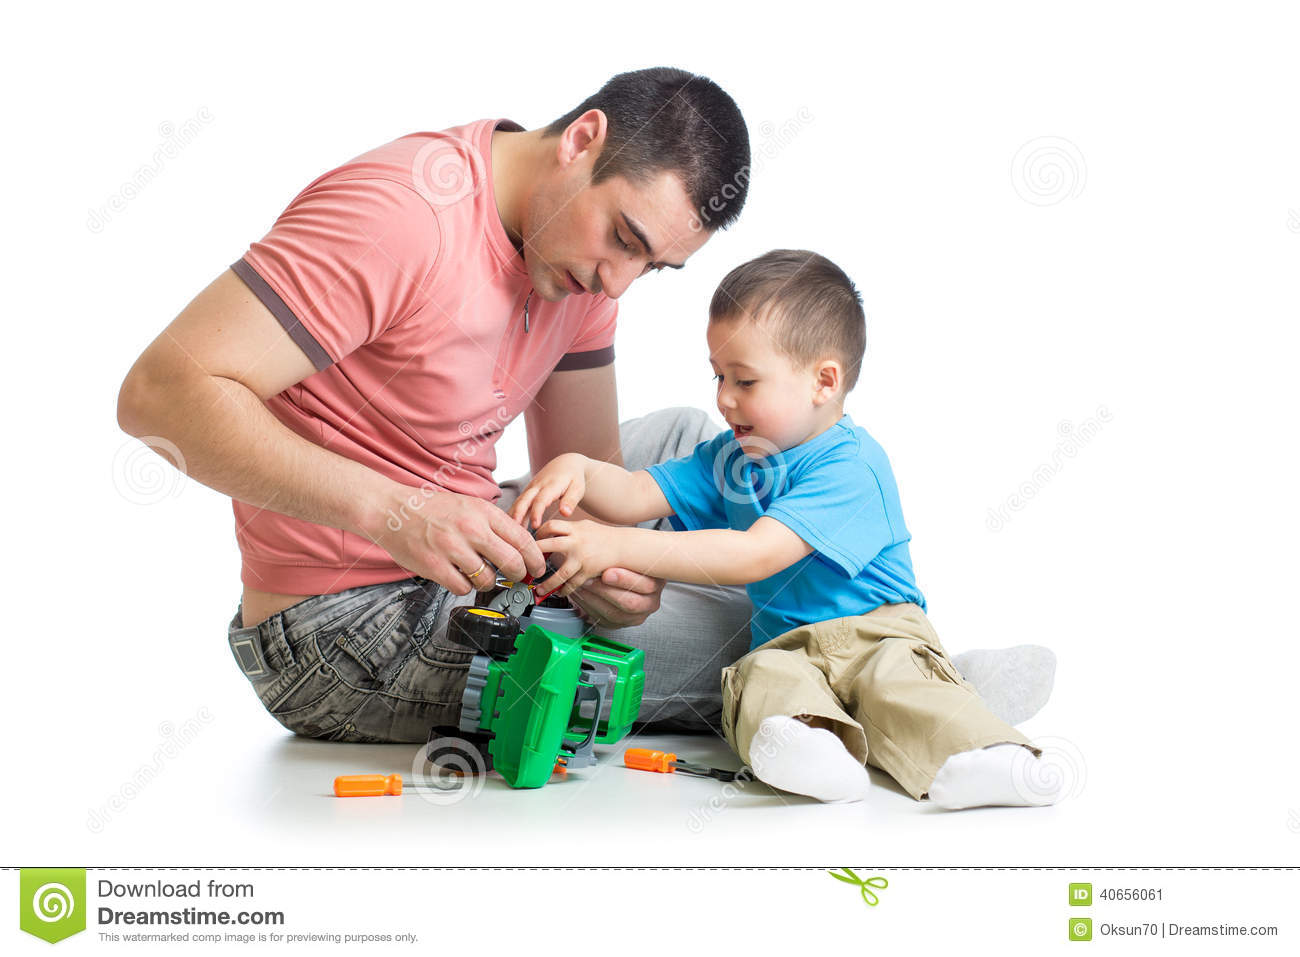 Toys For Dads : Kid boy and his father repair toy car stock image